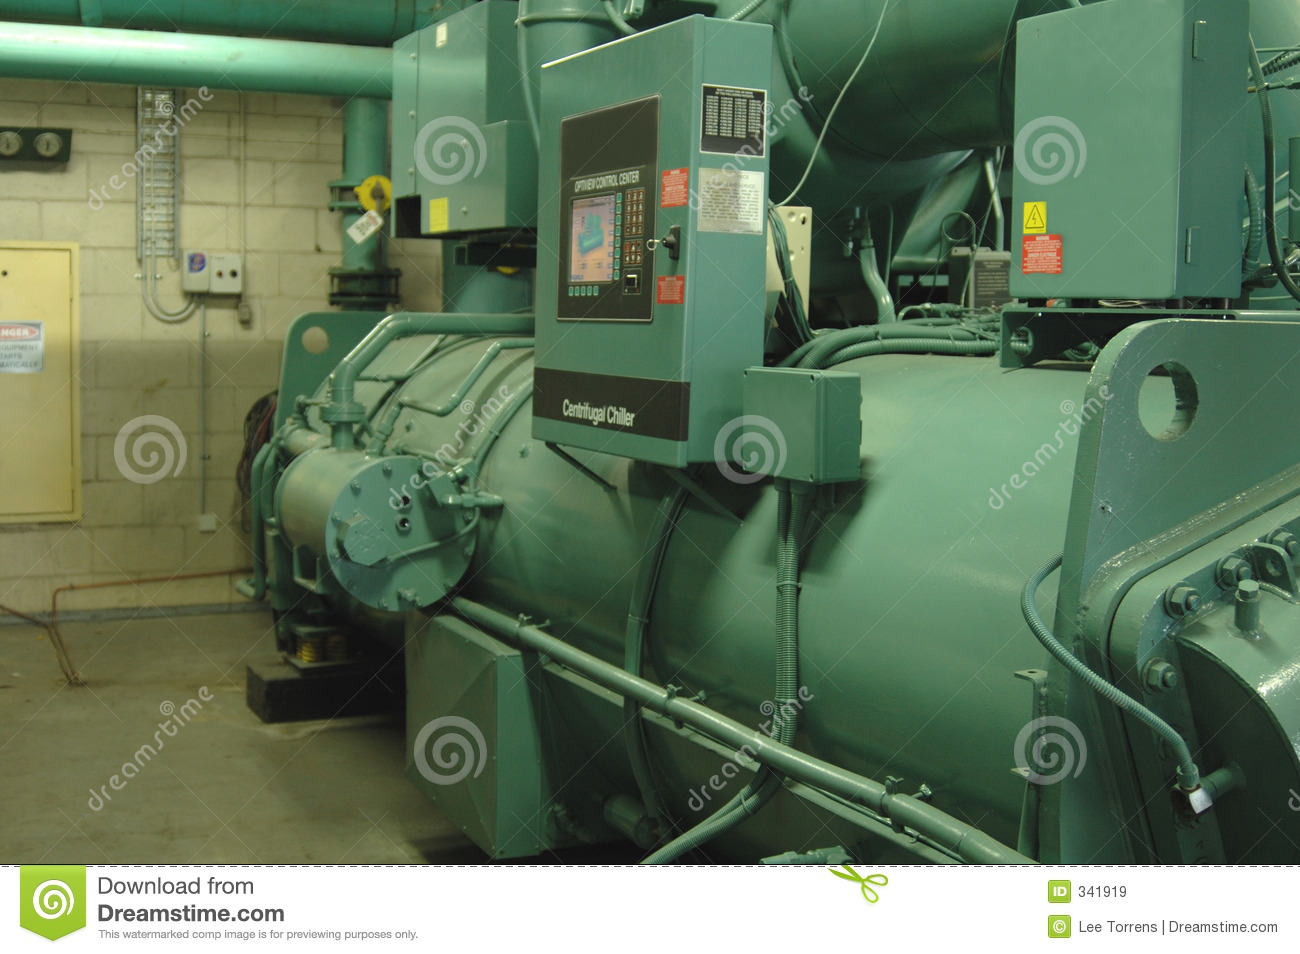 large commercial size water Chiller used to cool the water in a  #81A229